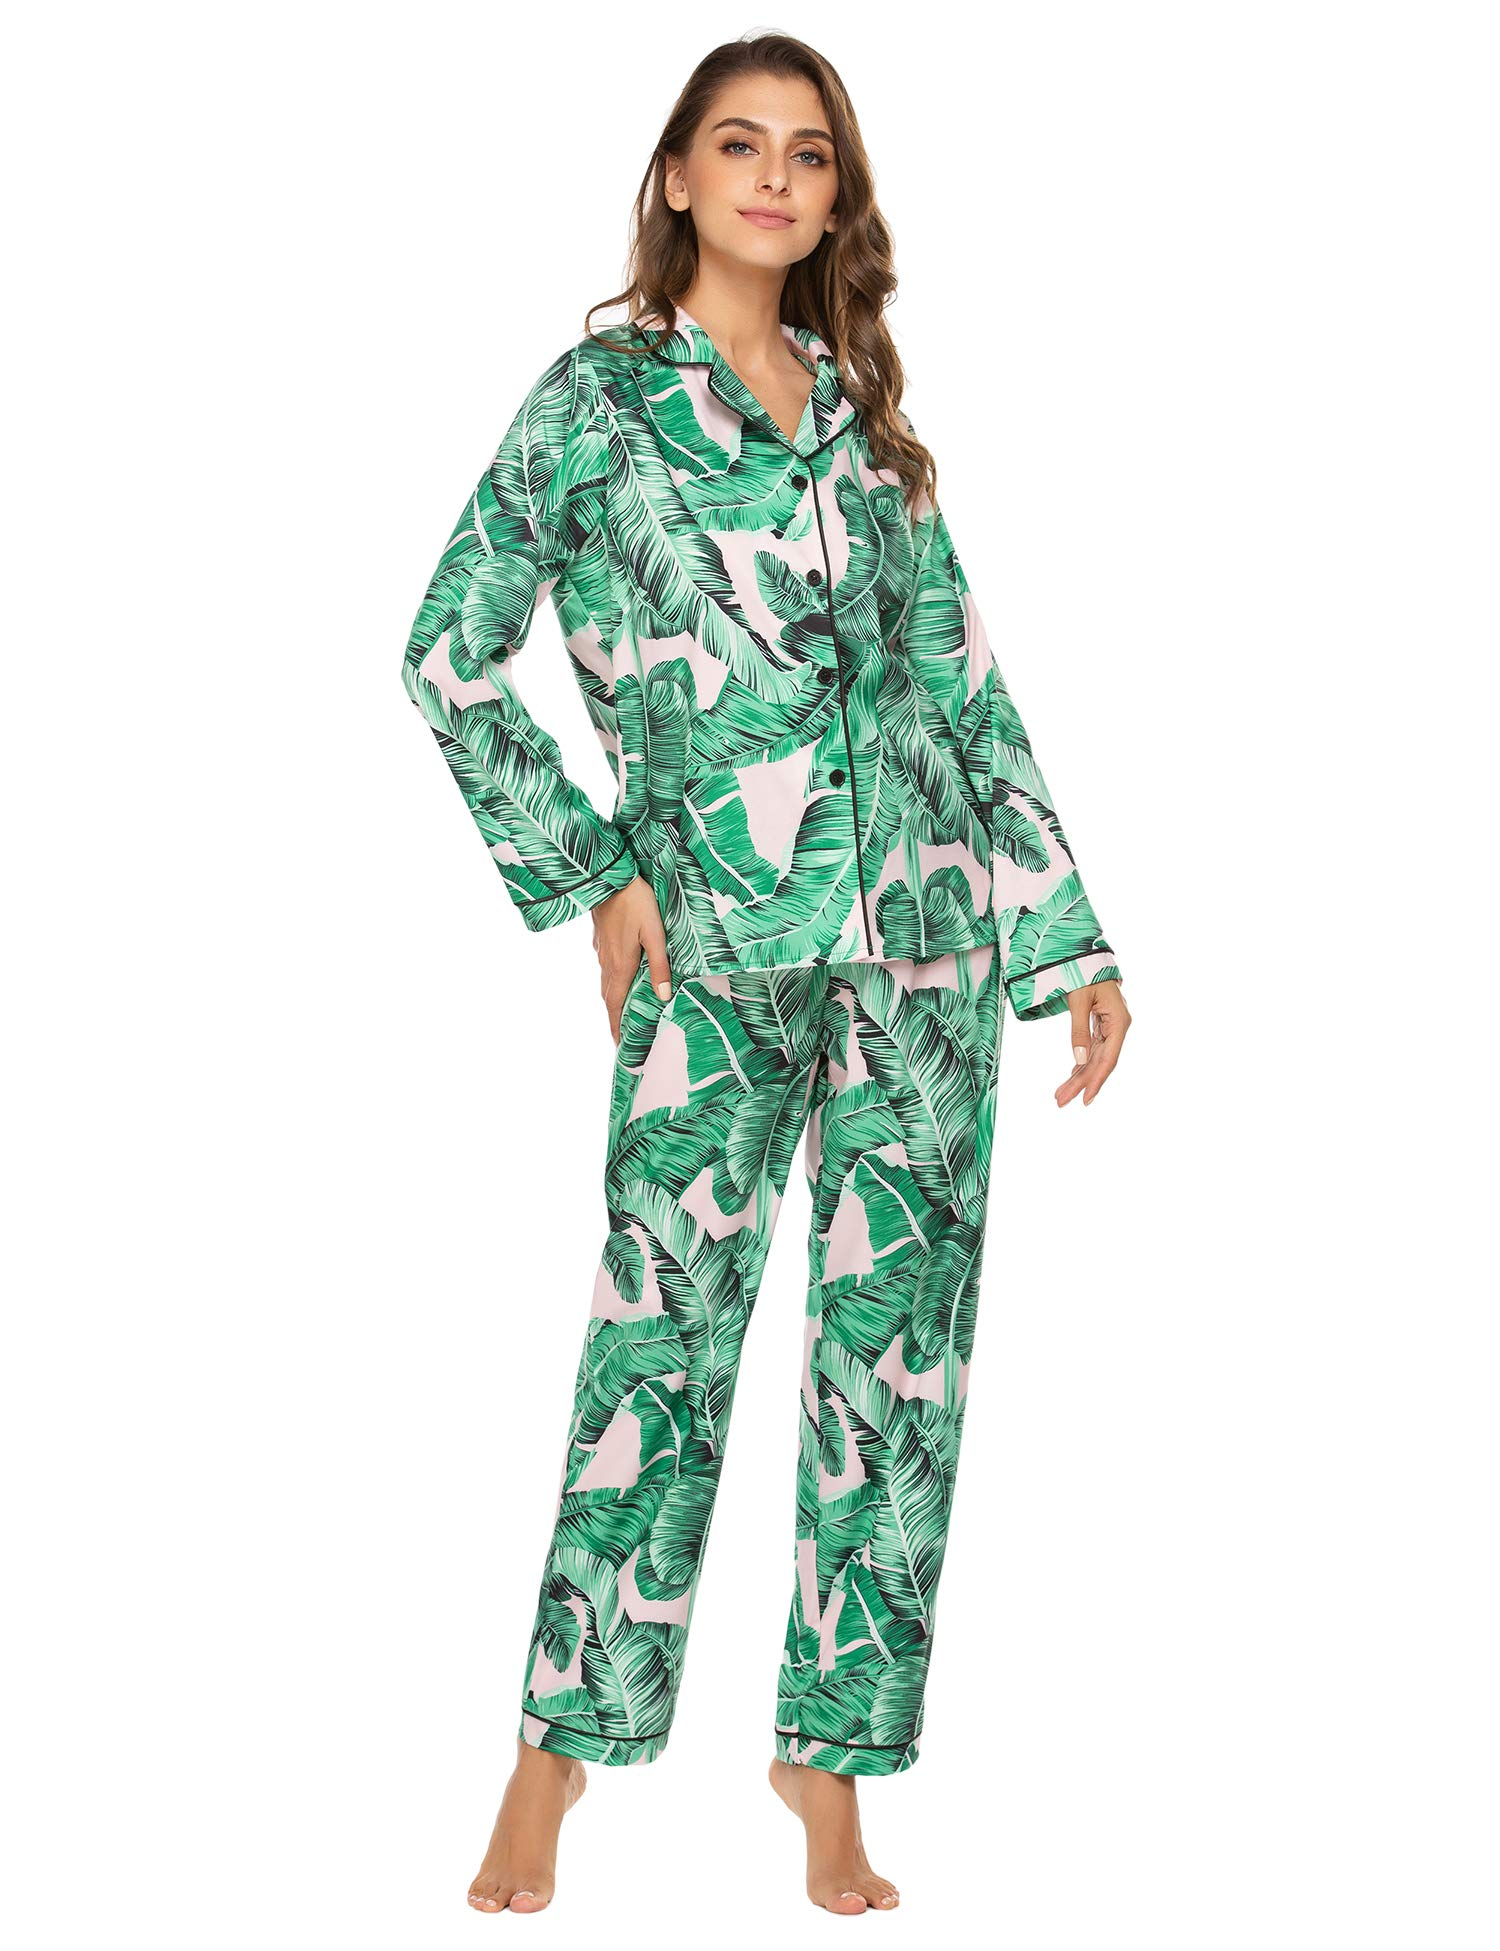 Ekouaer Women's Button Down Pajama Set Long Sleeve Loungewear with with Printed Patterns S-XXL